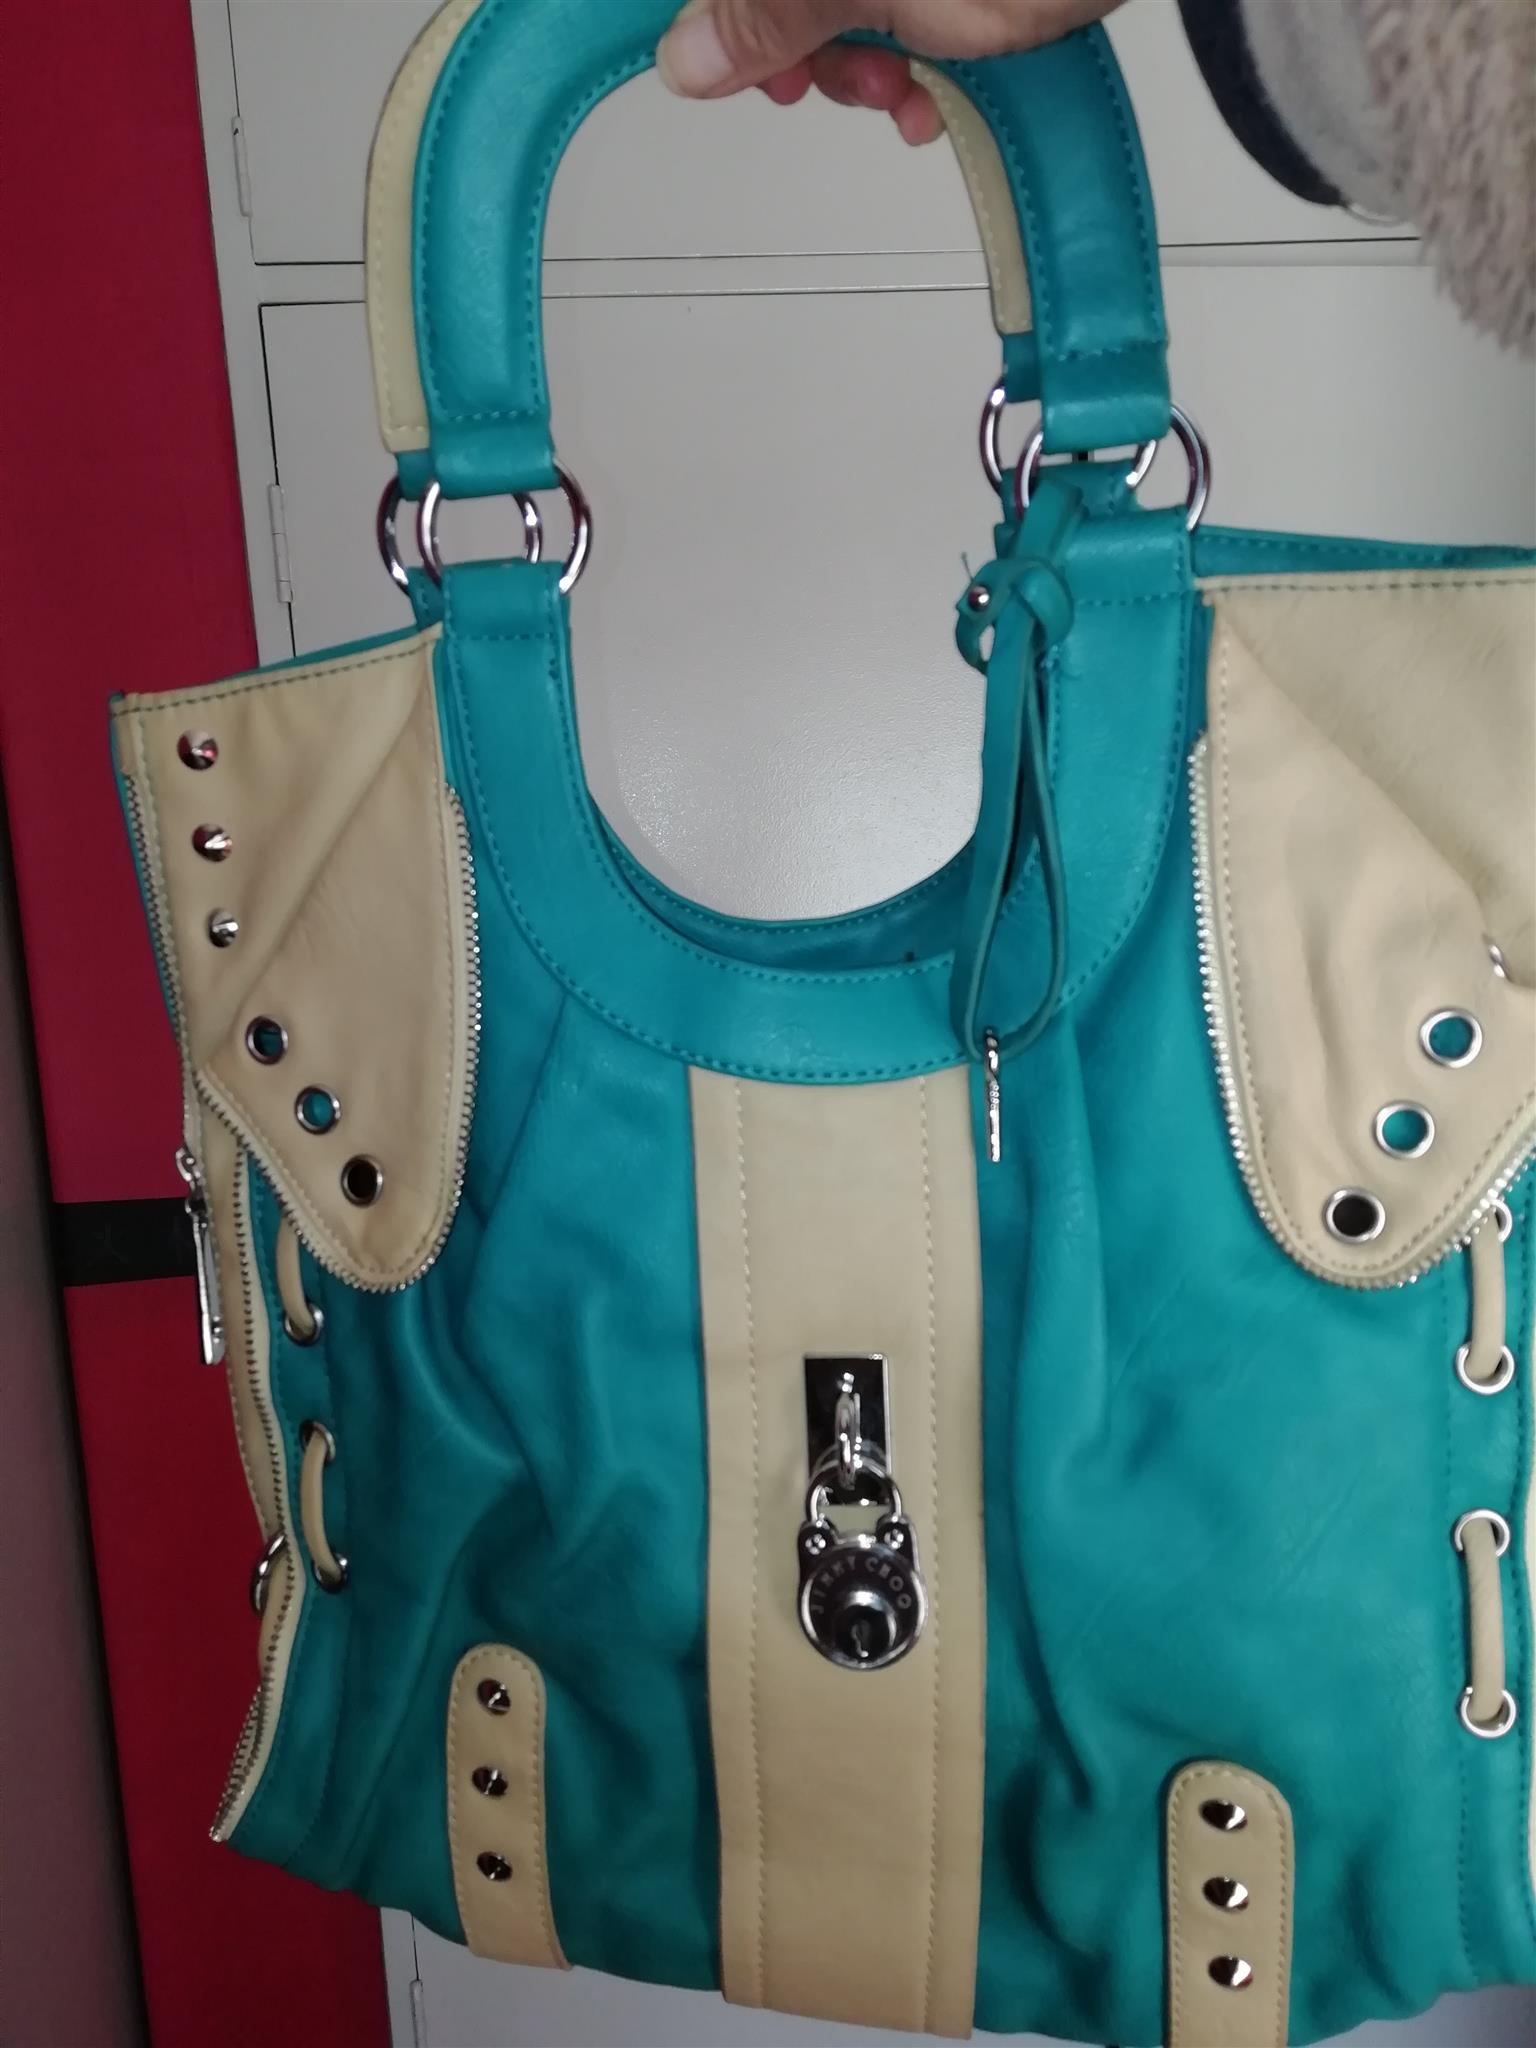 STUDDED JIMMY CHOO BAG FOR SALE